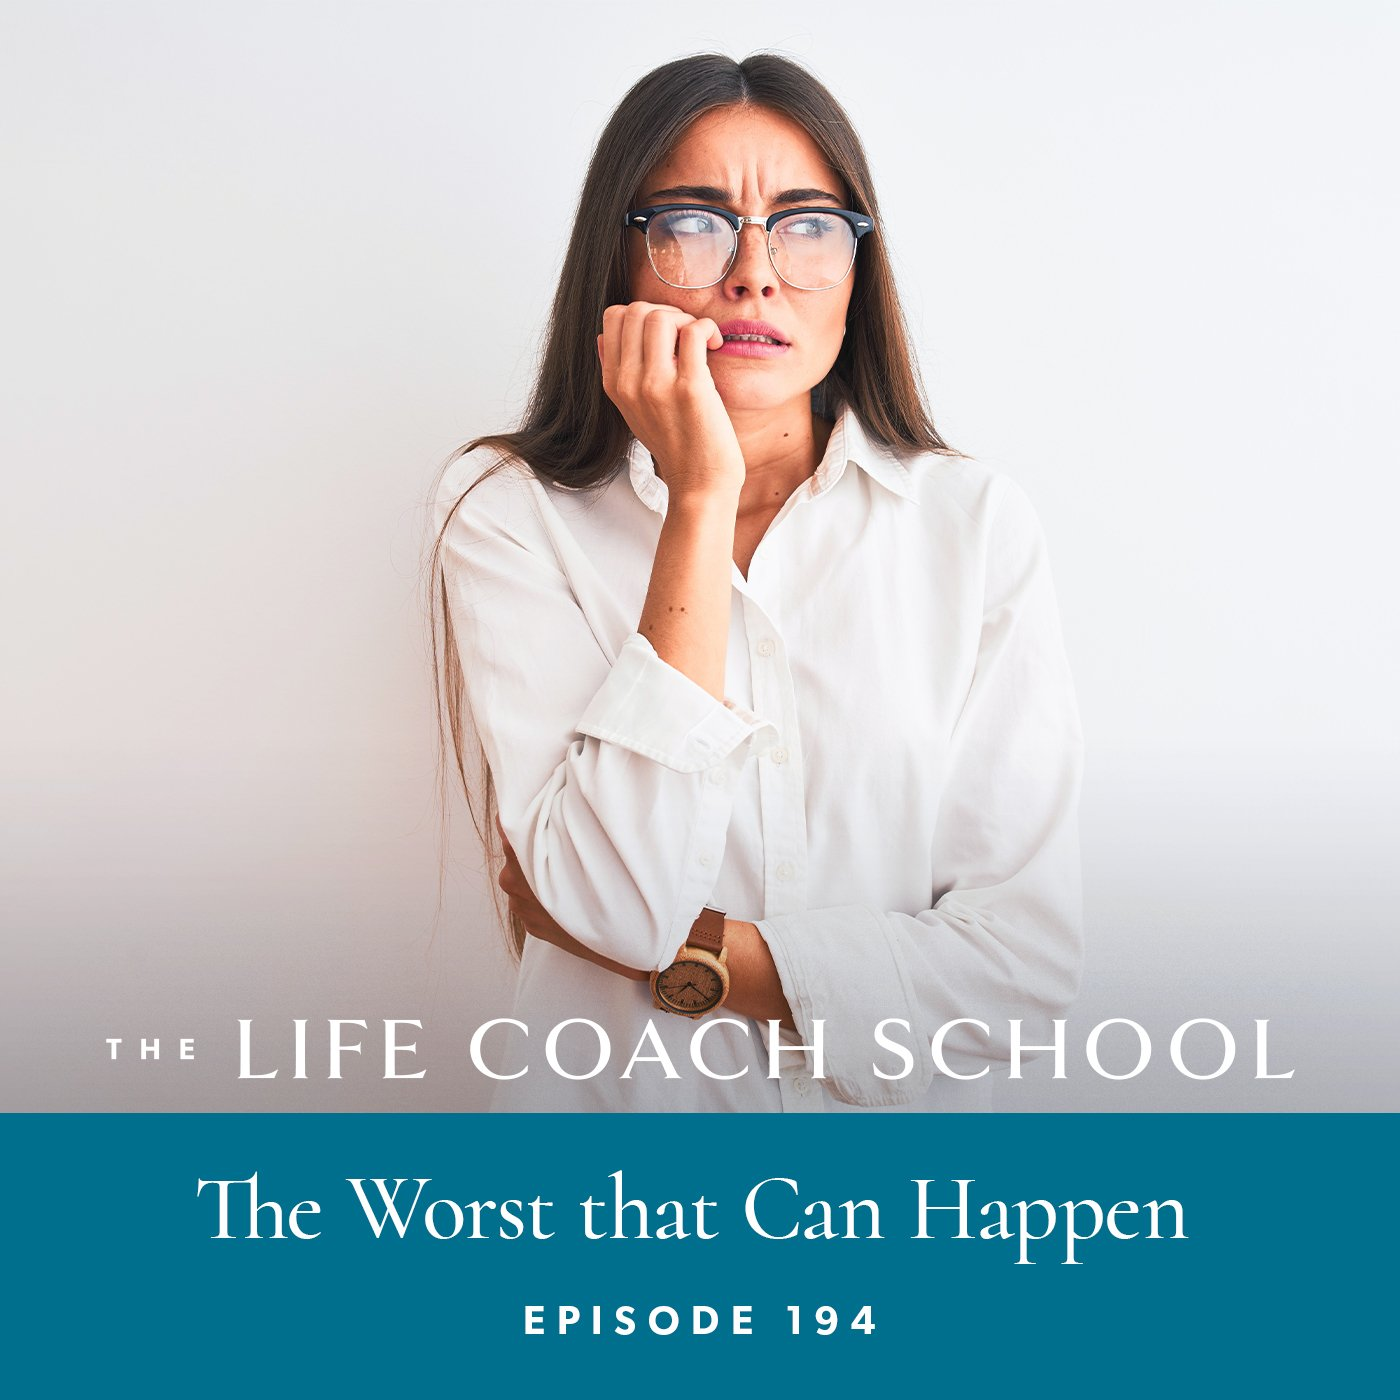 The Life Coach School Podcast with Brooke Castillo | Episode 194 | The Worst that Can Happen